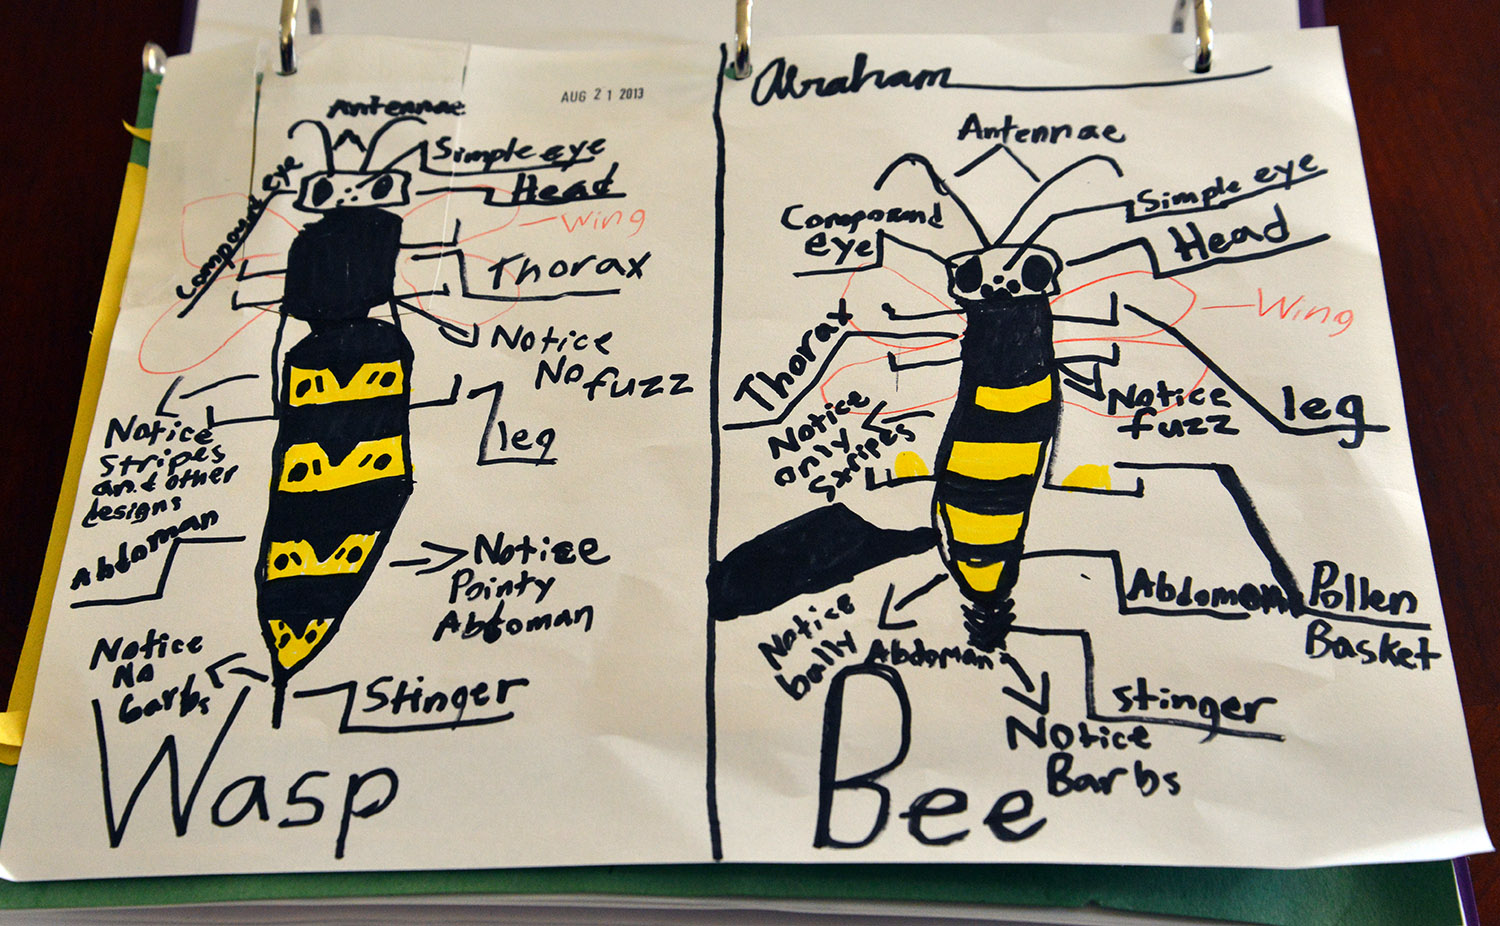 A school of fish: Bees vs. Wasps, and Stingers